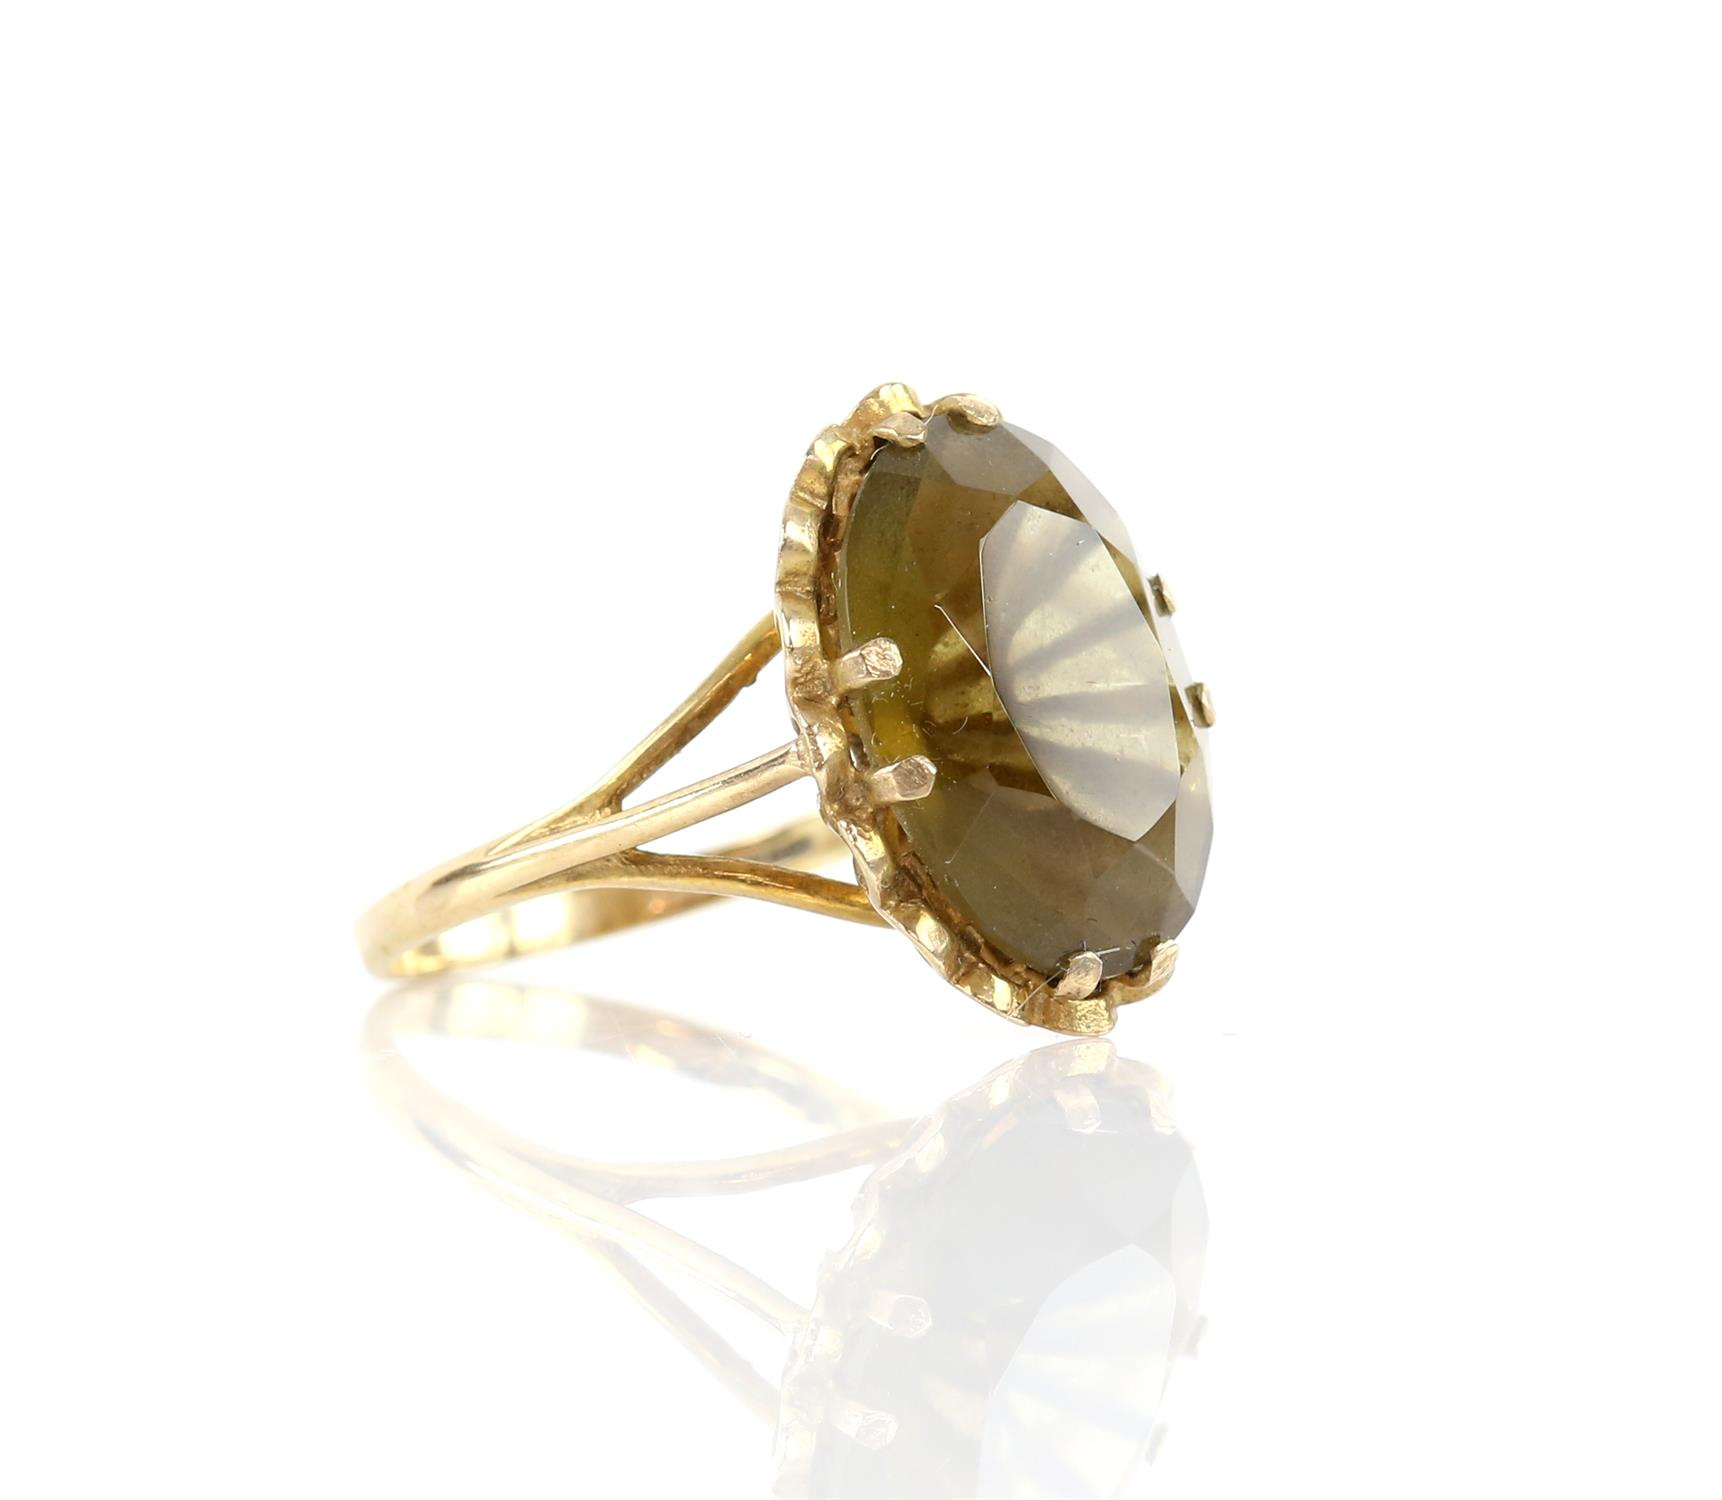 Single stone citrine ring. Oval cut citrine measuring 18.36 x 13.39mm, mounted in 9 ct, - Image 2 of 3